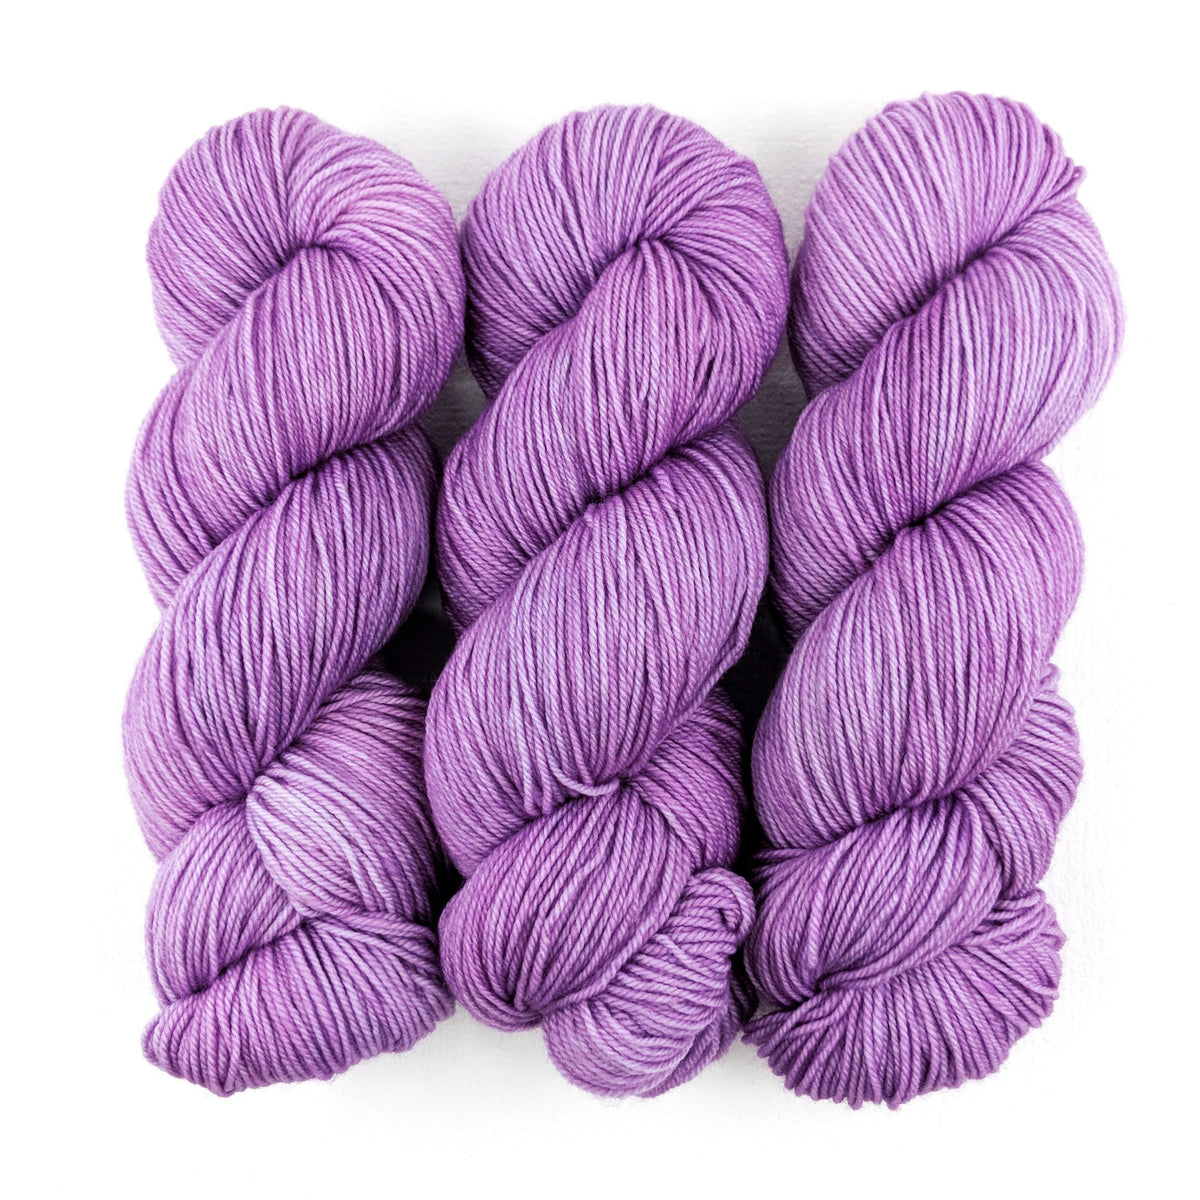 House Orchid in Fingering / Sock Weight